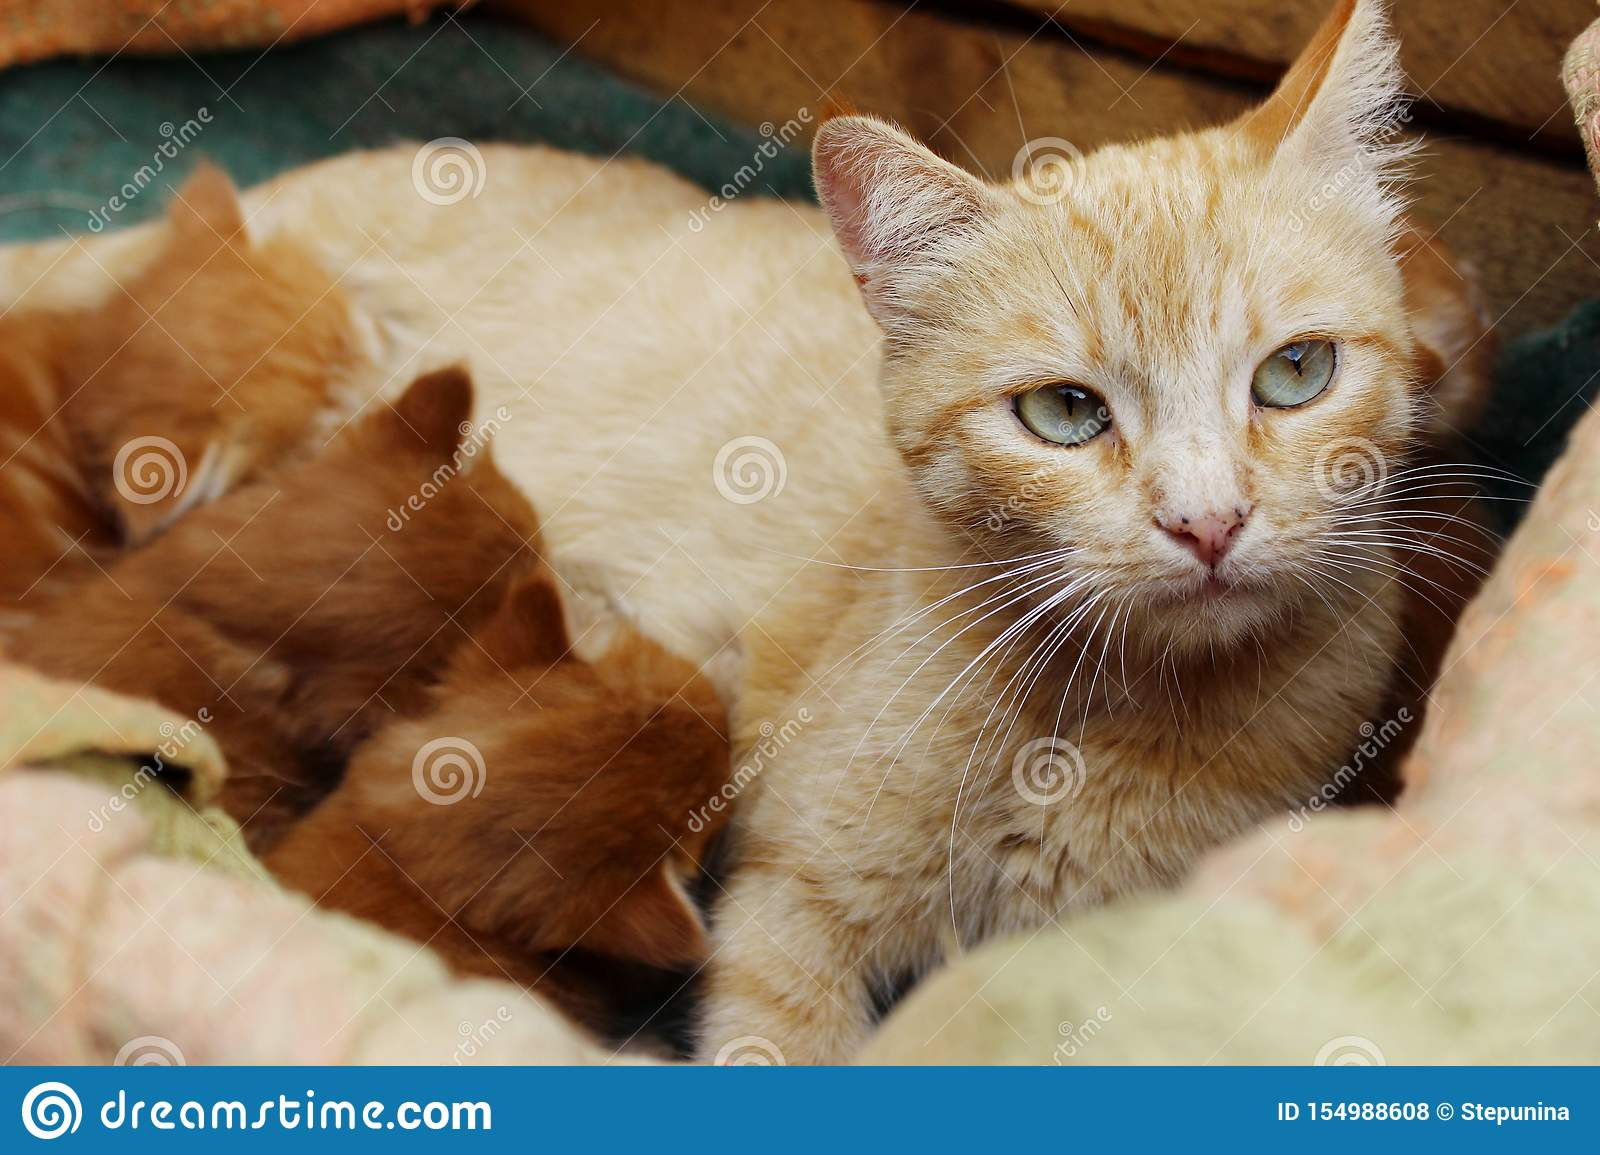 Ginger Cat And Cute Kittens Red Tabby Cat And Kittens In Wooden Box Stock Photo Image Of Adoption Kitten 154988608